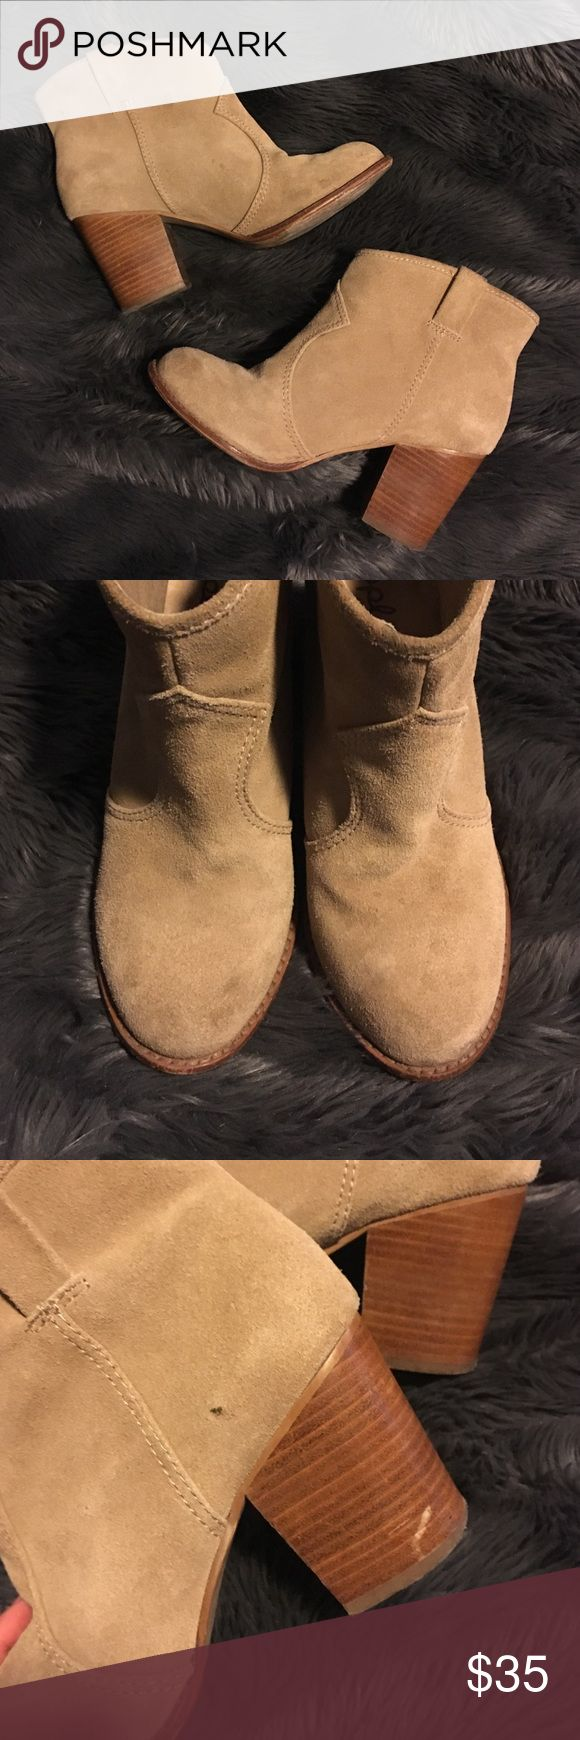 Booties Great leather booties! In fair condition tons of life left in them without having to break them in much! Inspect all photos carefully ❤️ Splendid Shoes Ankle Boots & Booties